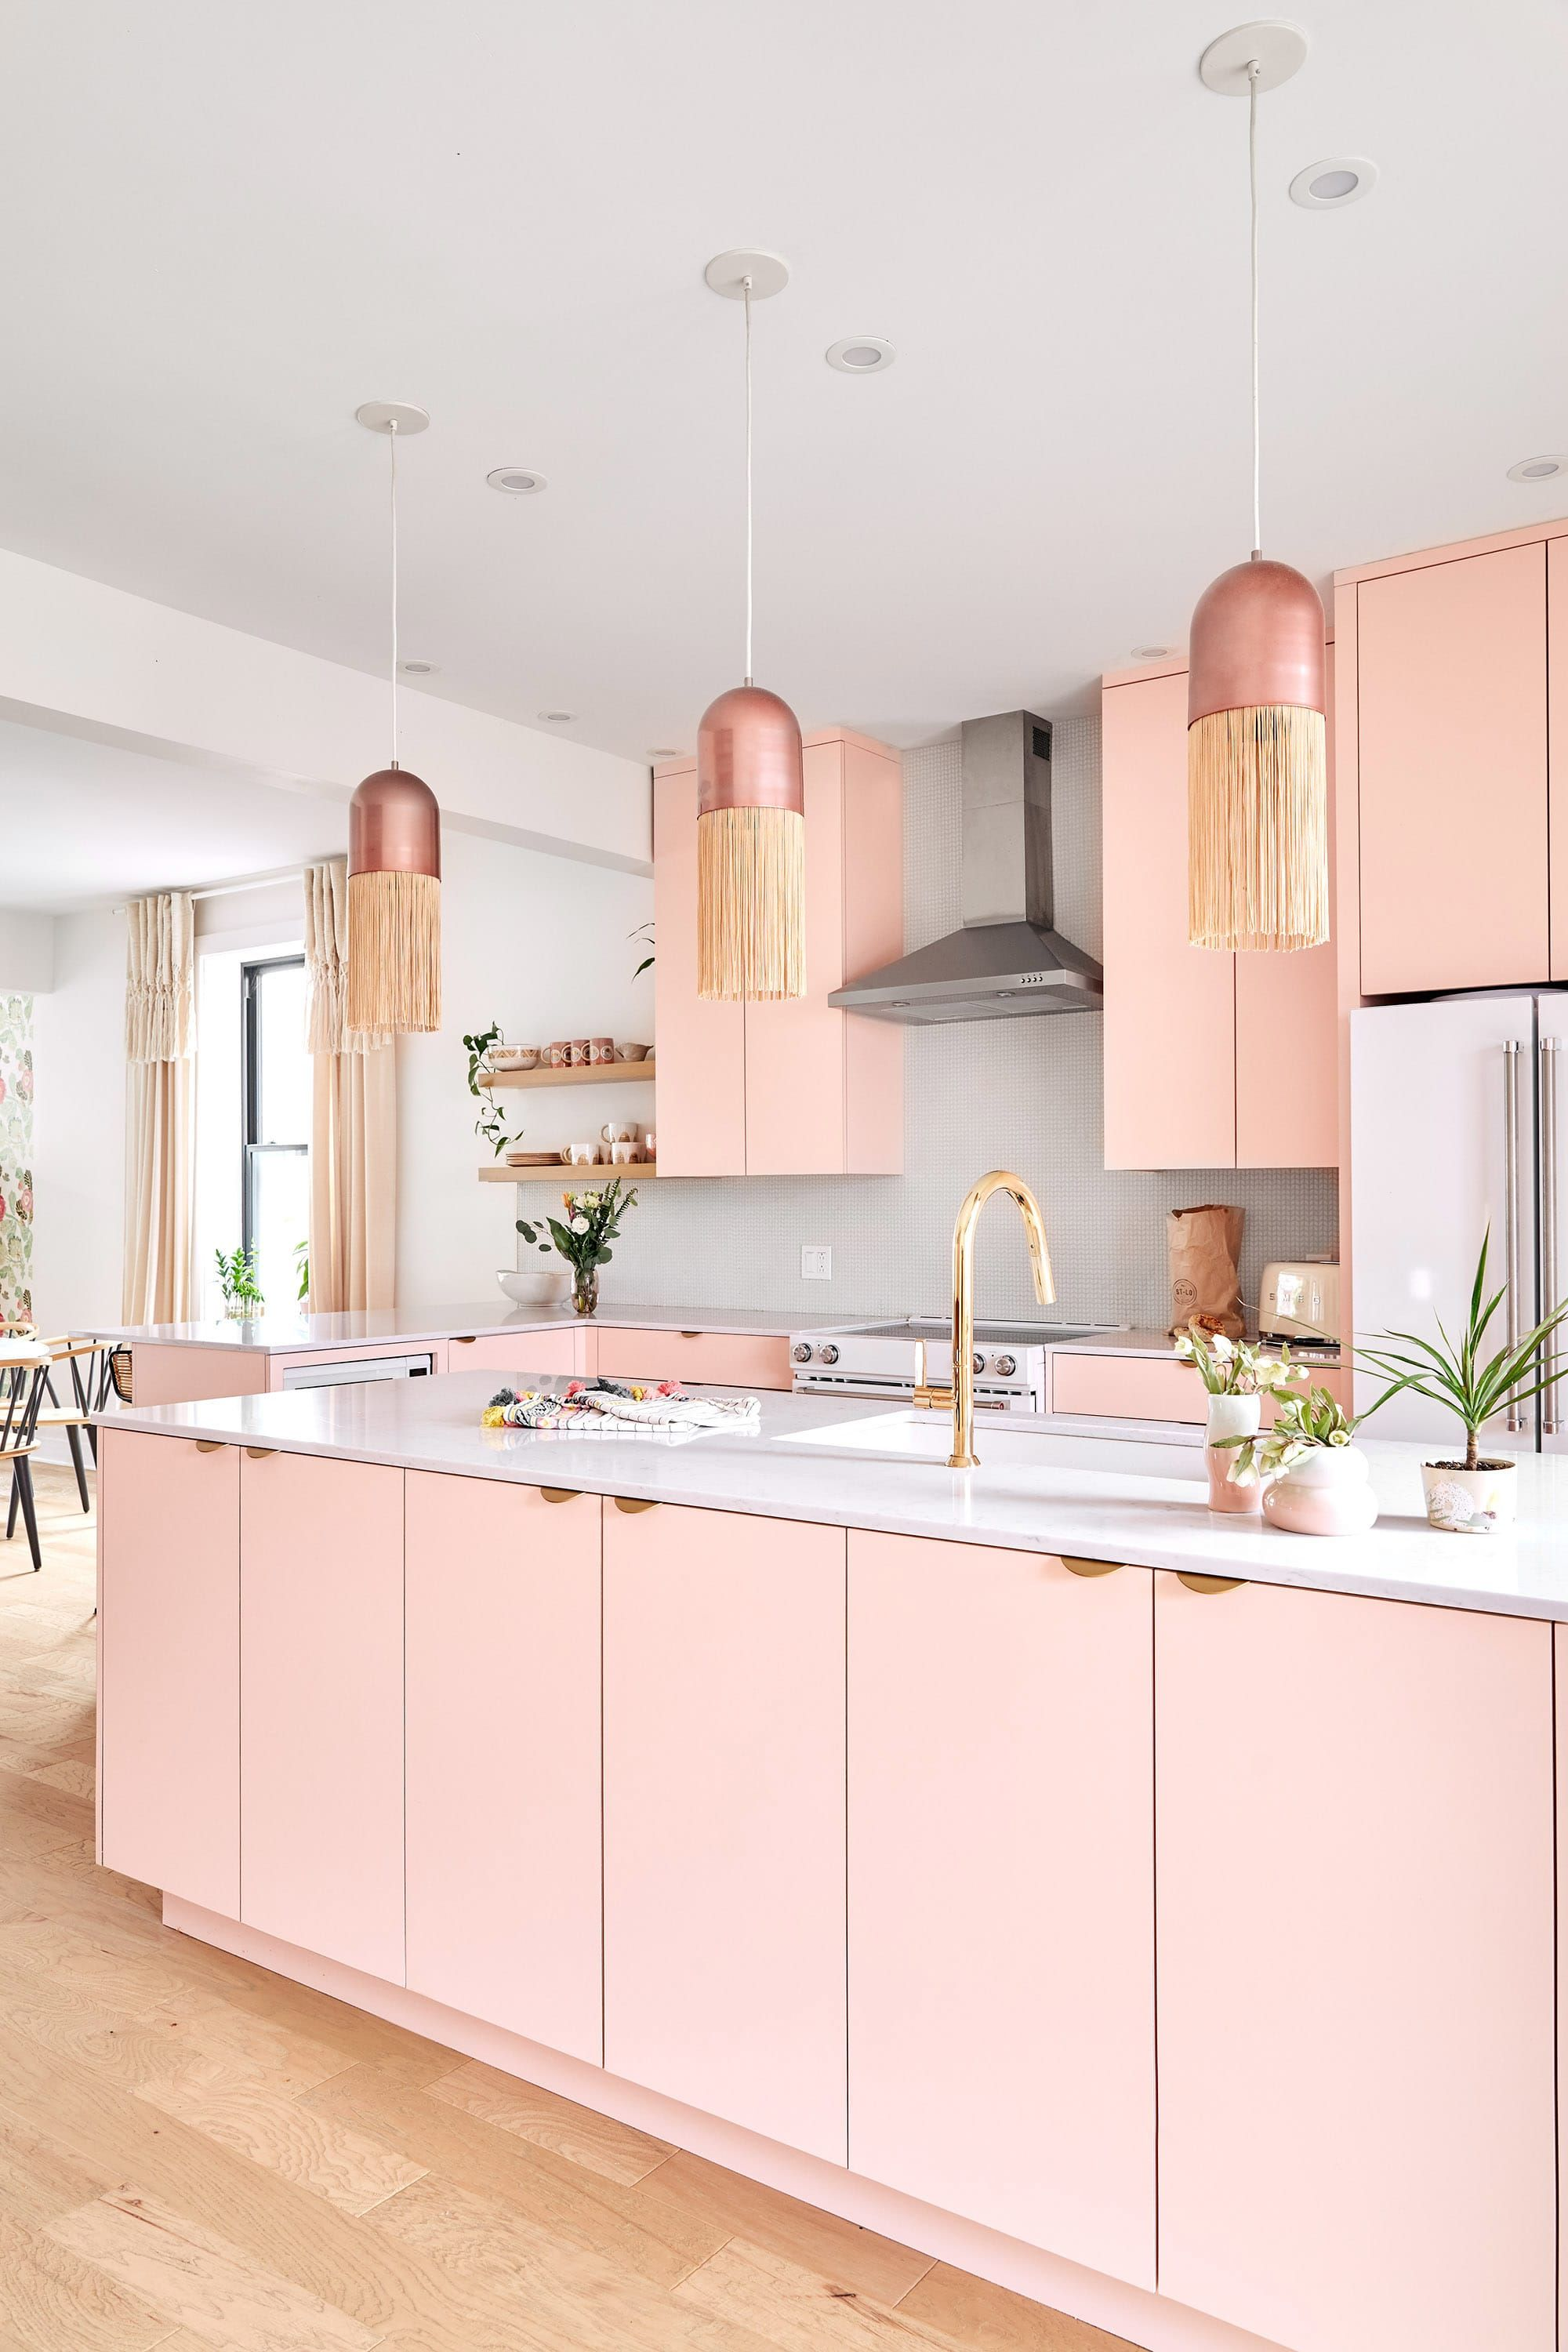 This Renovated Montréal Home Has the Most Stunning Modern Pink Kitchen